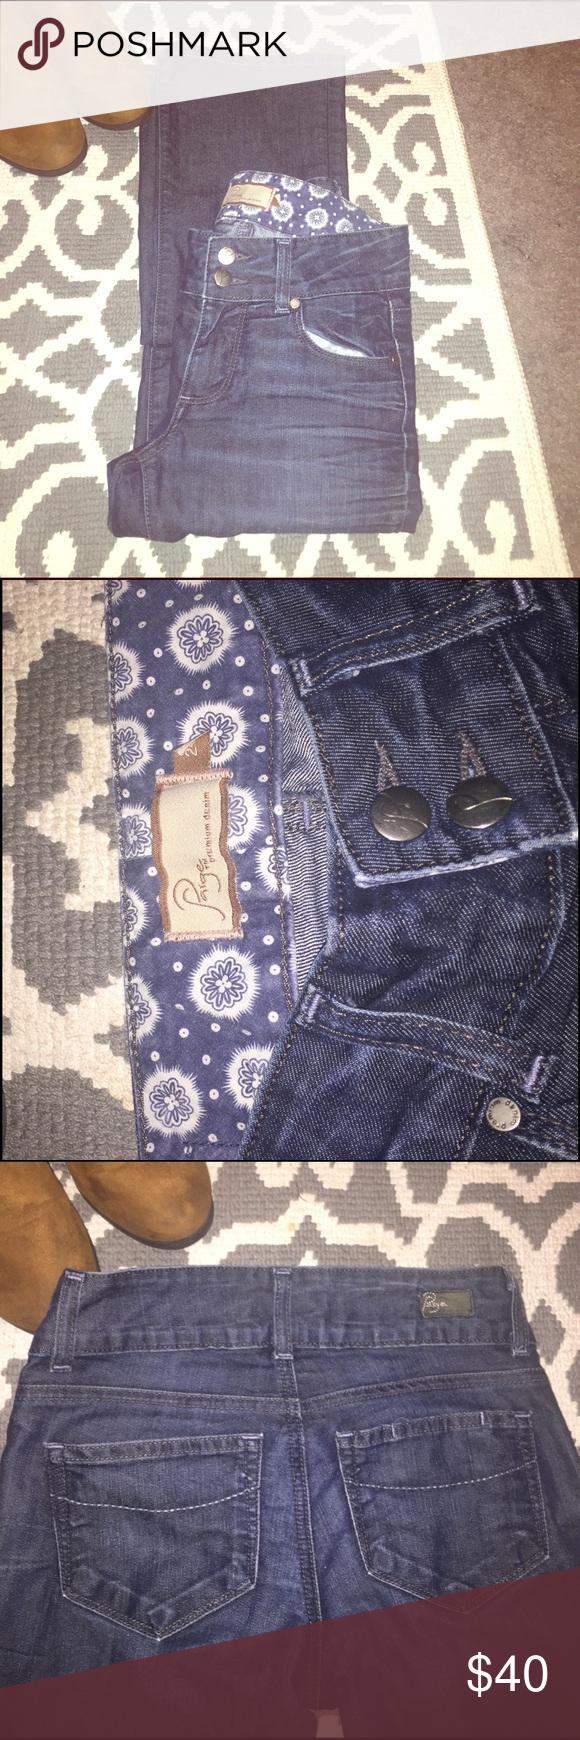 """Paige Jeans Boot Cut Hidden Hills Style """"Hidden Hills."""" Bootcut Wide leg. High Rise. Size 24 (0). Used. I accept reasonable offers. Paige Jeans Jeans Boot Cut"""